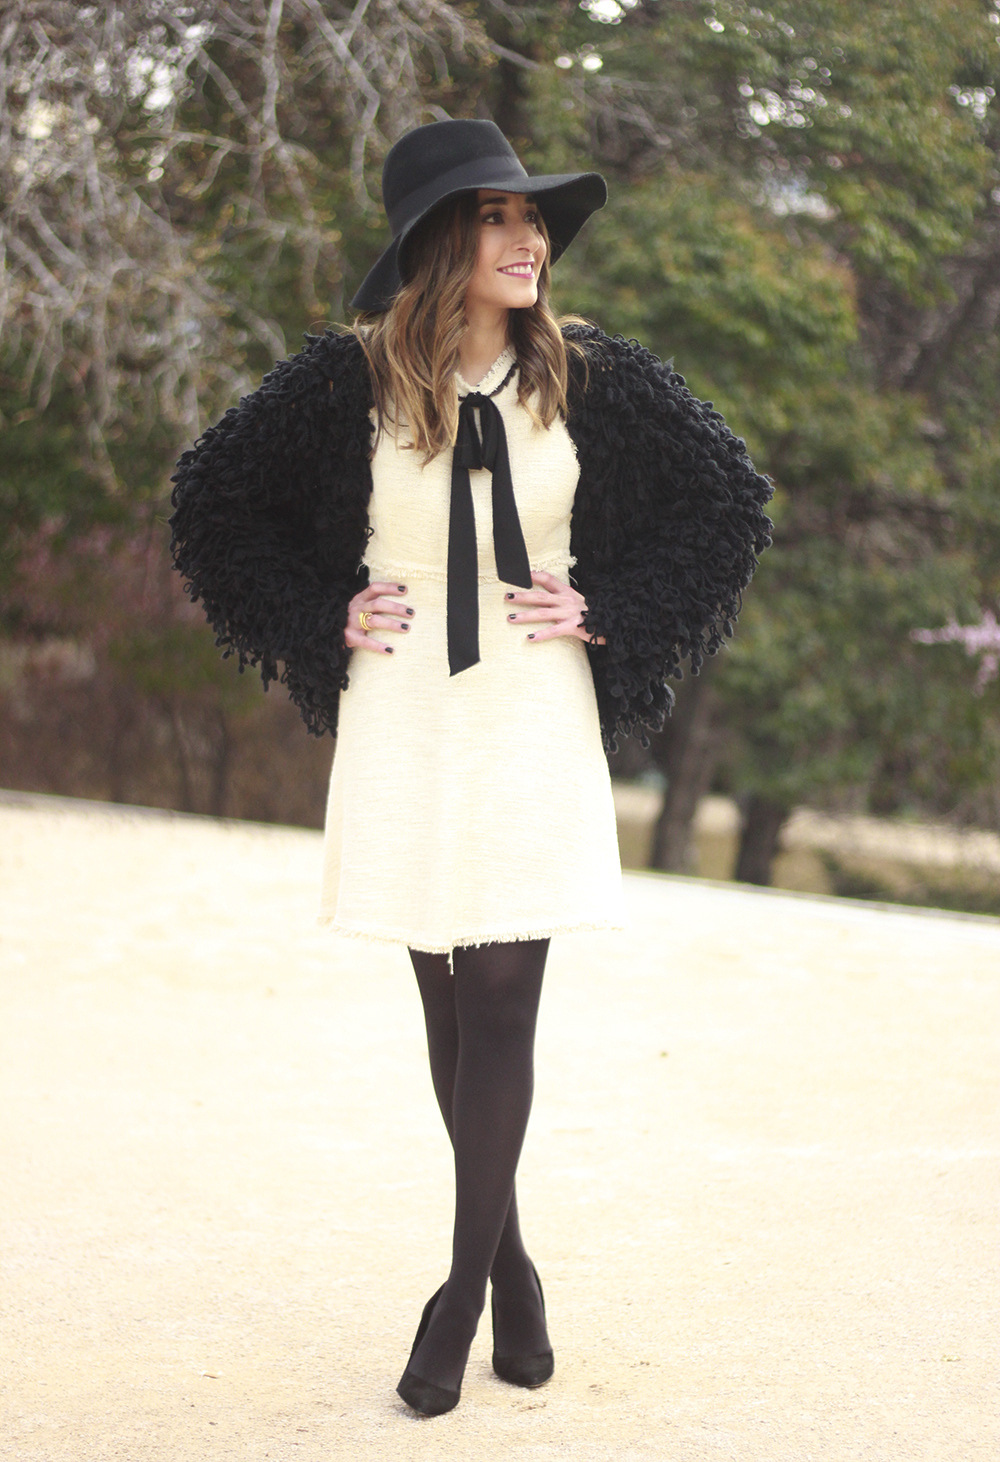 White tweed dress with bow black jacket hat outfit14